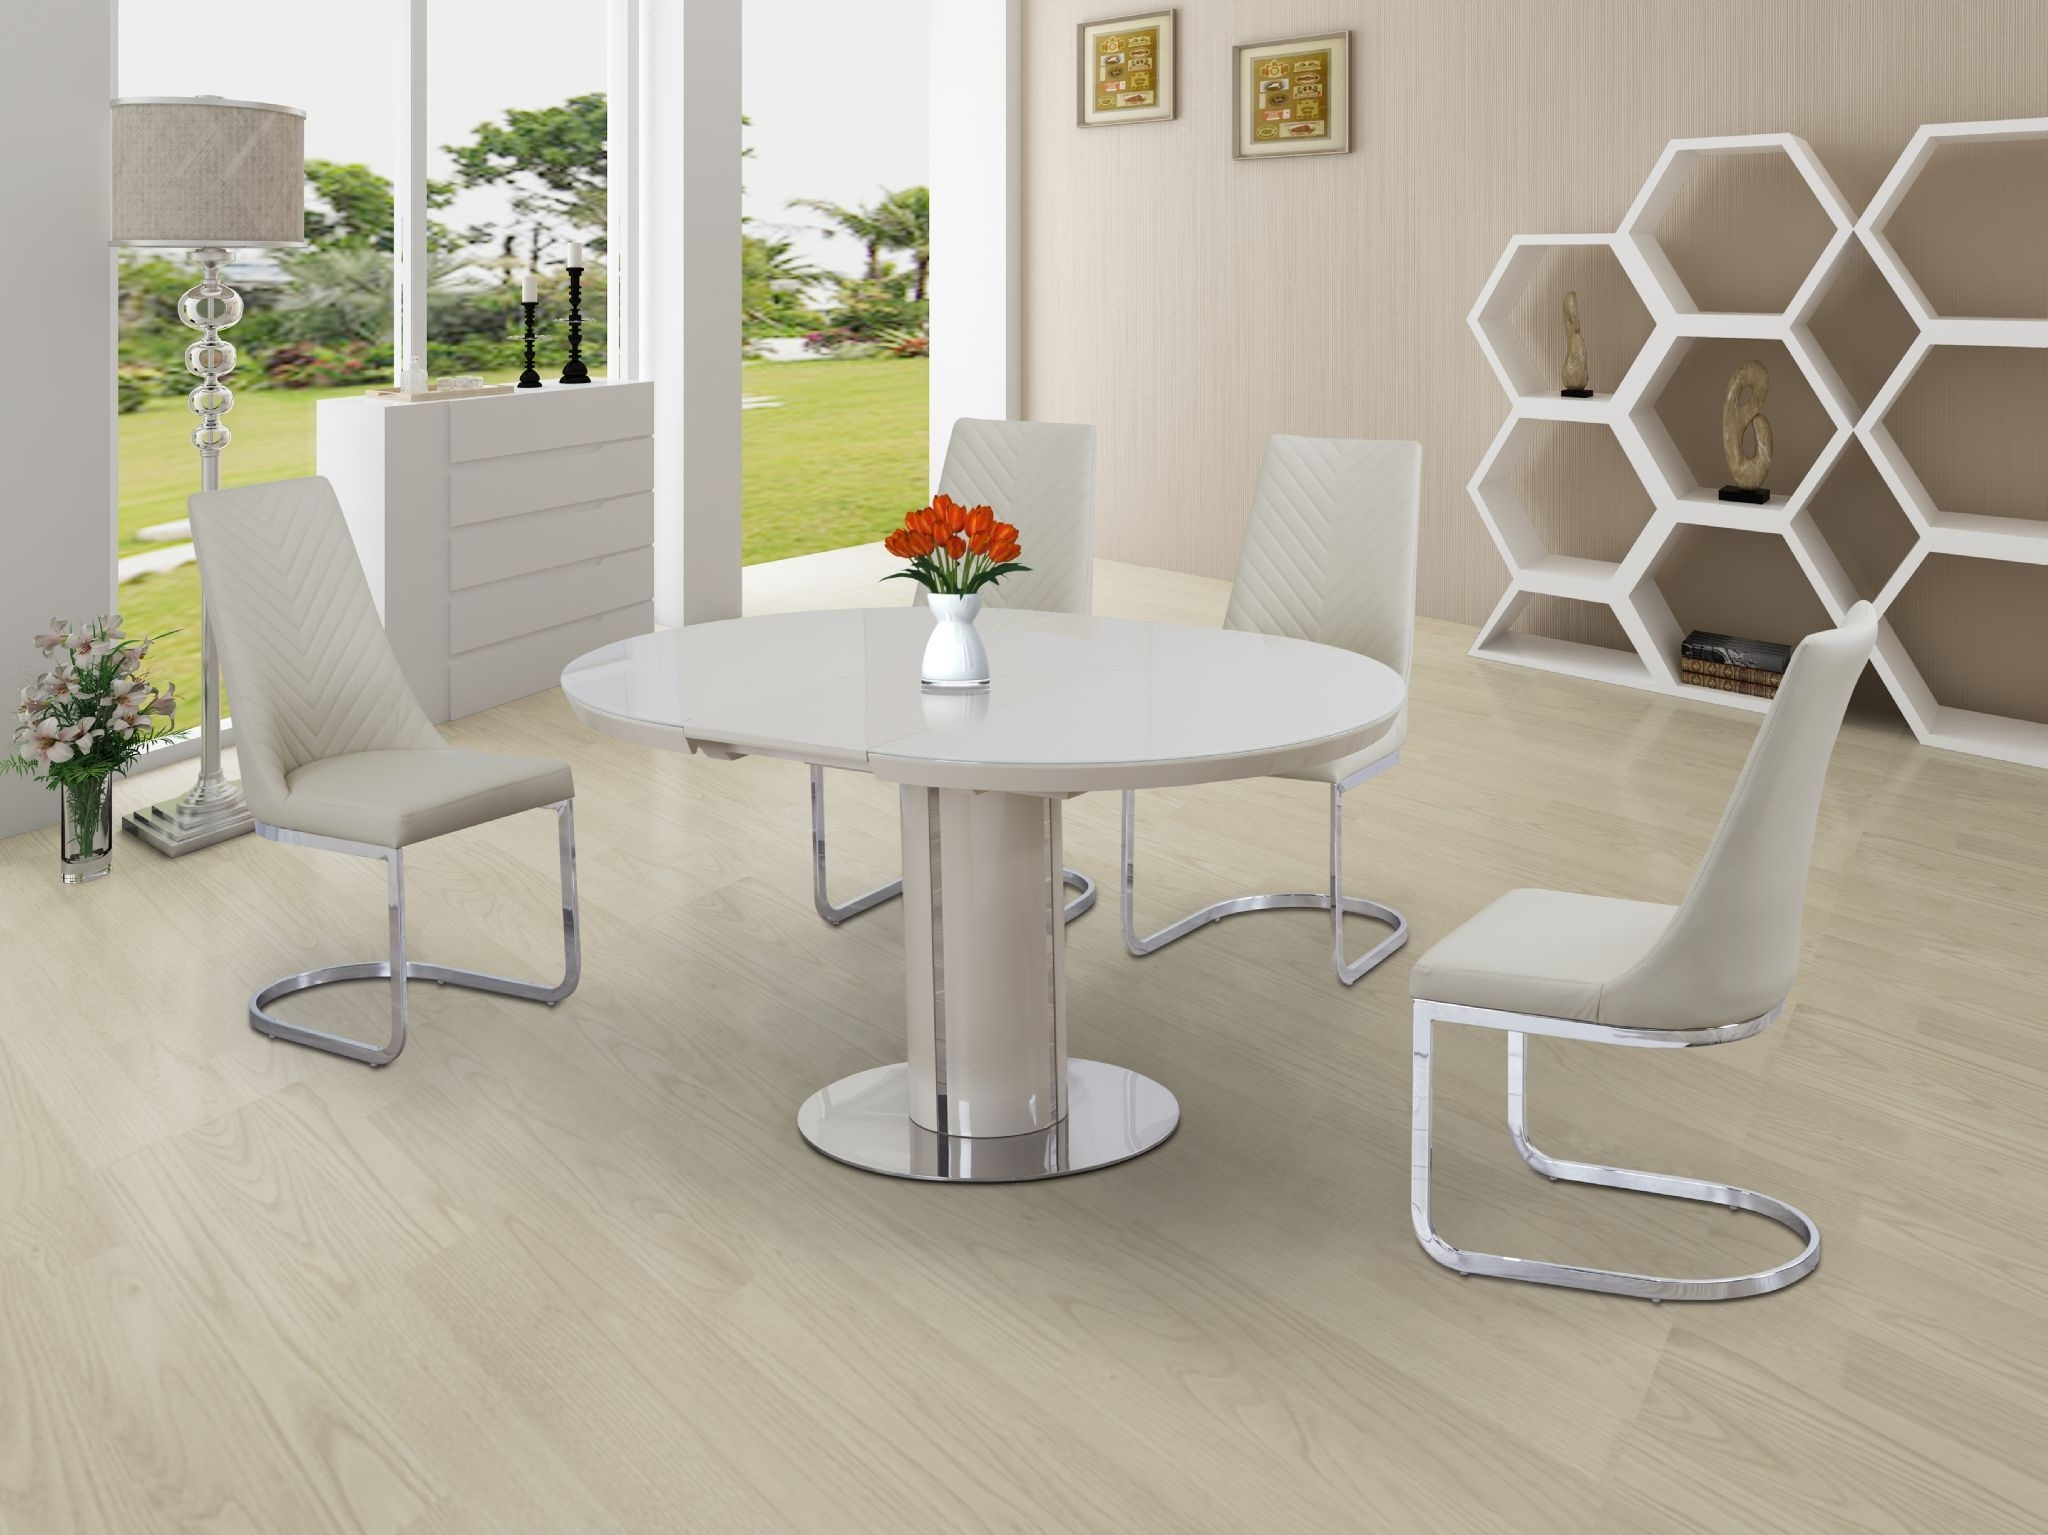 Small Extending Dining Tables And Chairs Inside 2018 Buy Cream Small Round Extendable Dining Table Today (View 21 of 25)